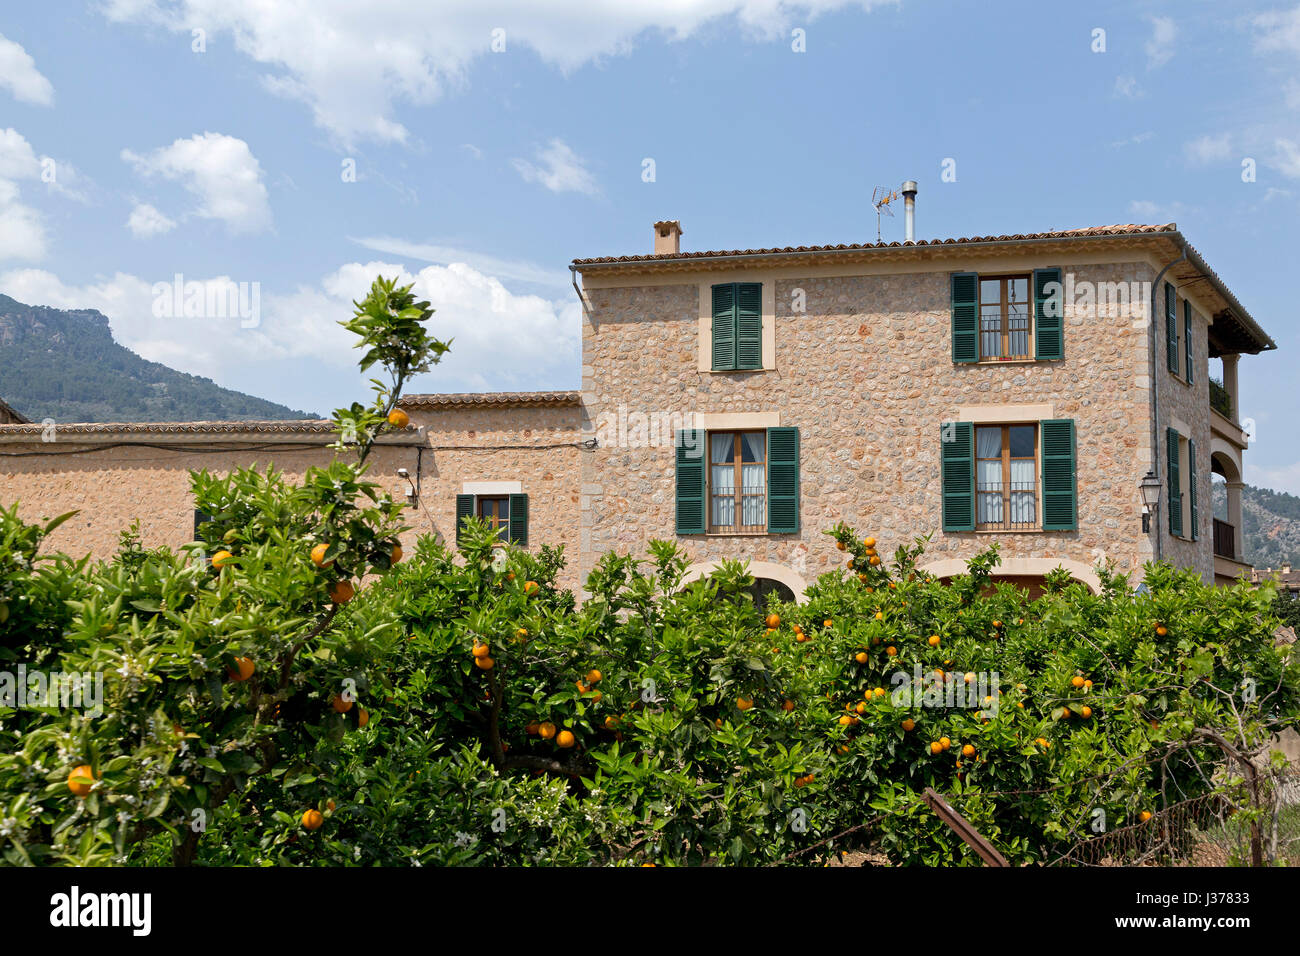 house in Sóller, Mallorca, Spain - Stock Image